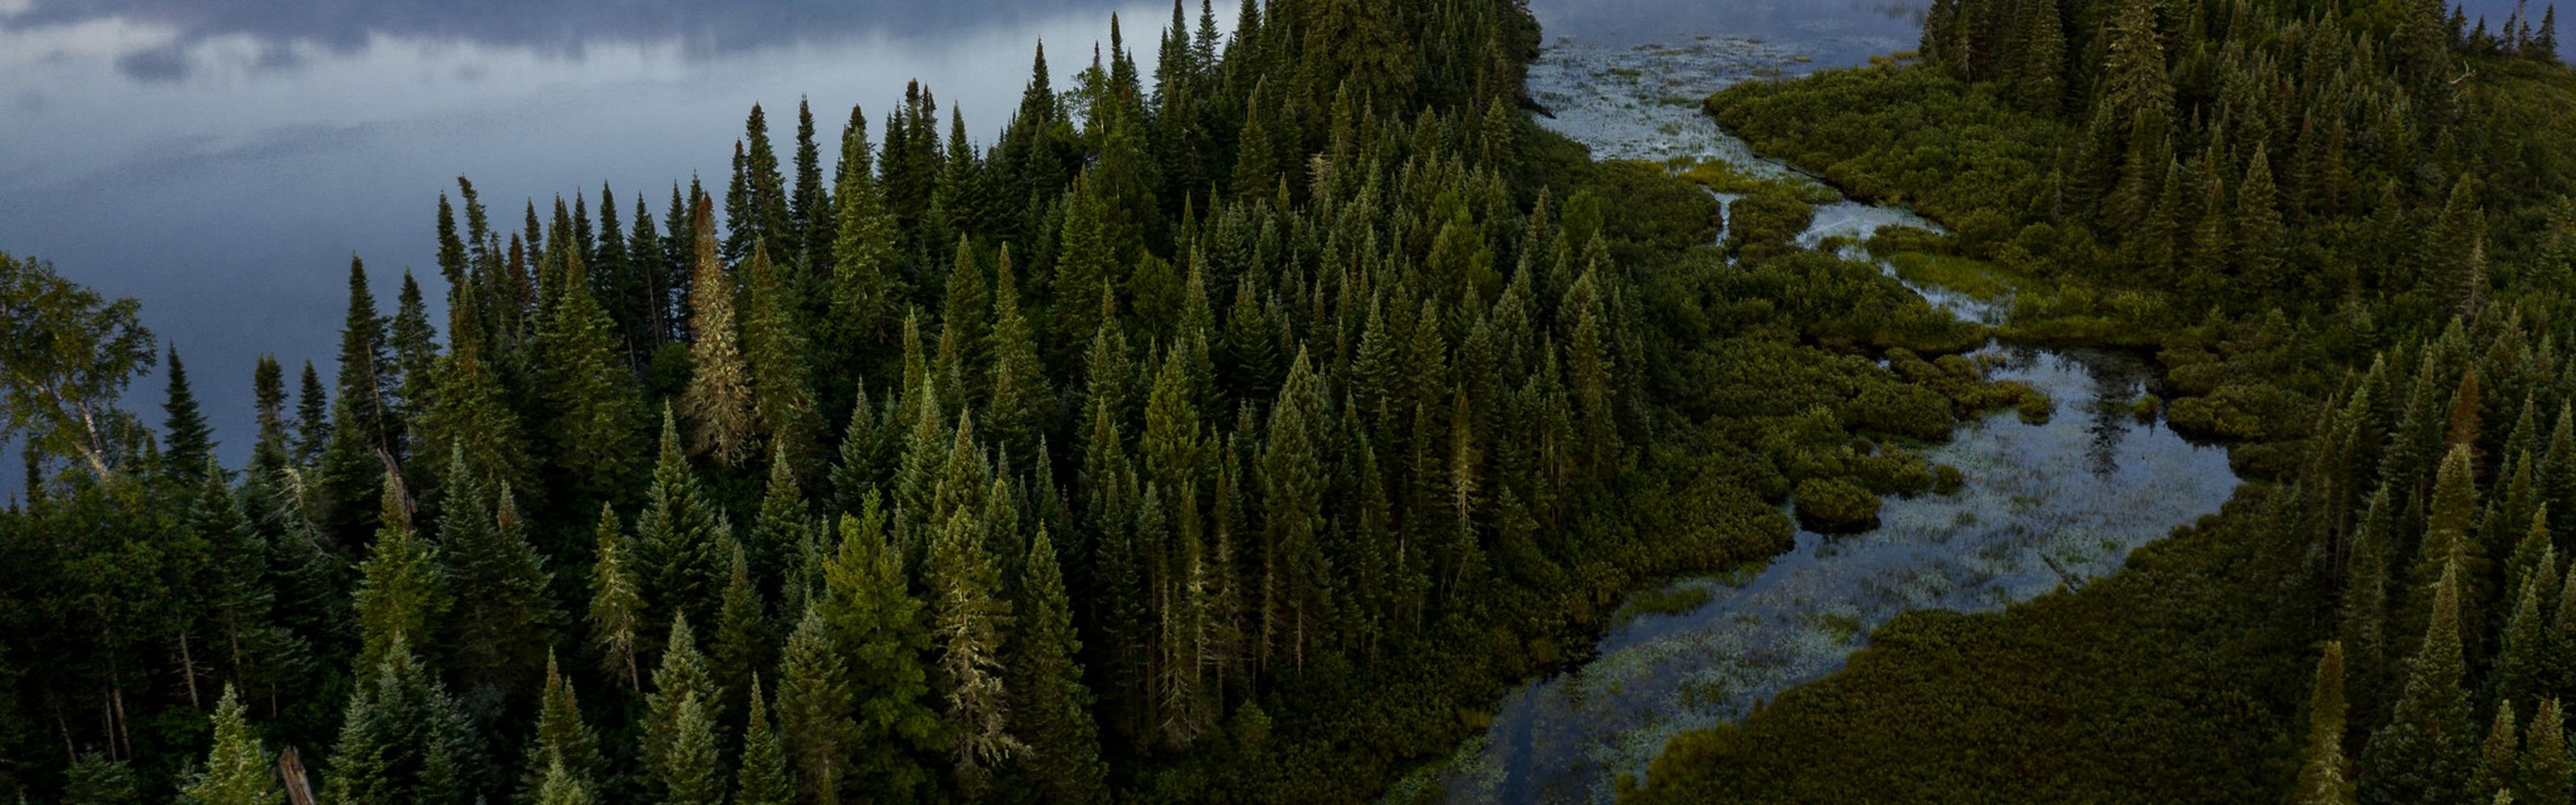 Aerial view of undeveloped woods and waters in northern Minnesota.